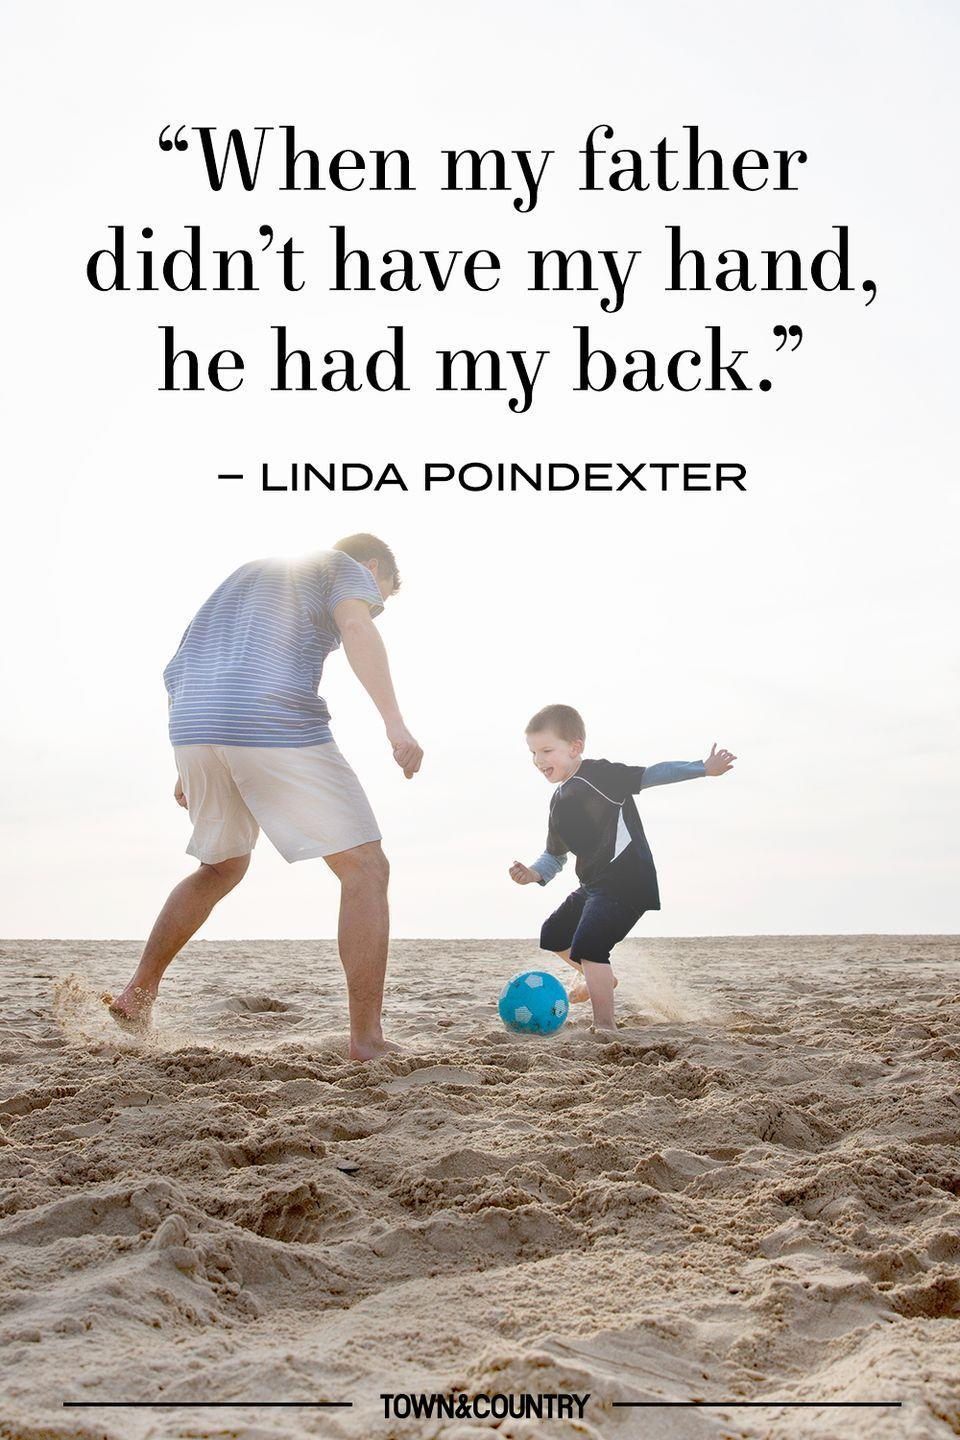 "<p>""When my father didn't have my hand, he had my back."" </p><p>– Linda Poindexter</p>"